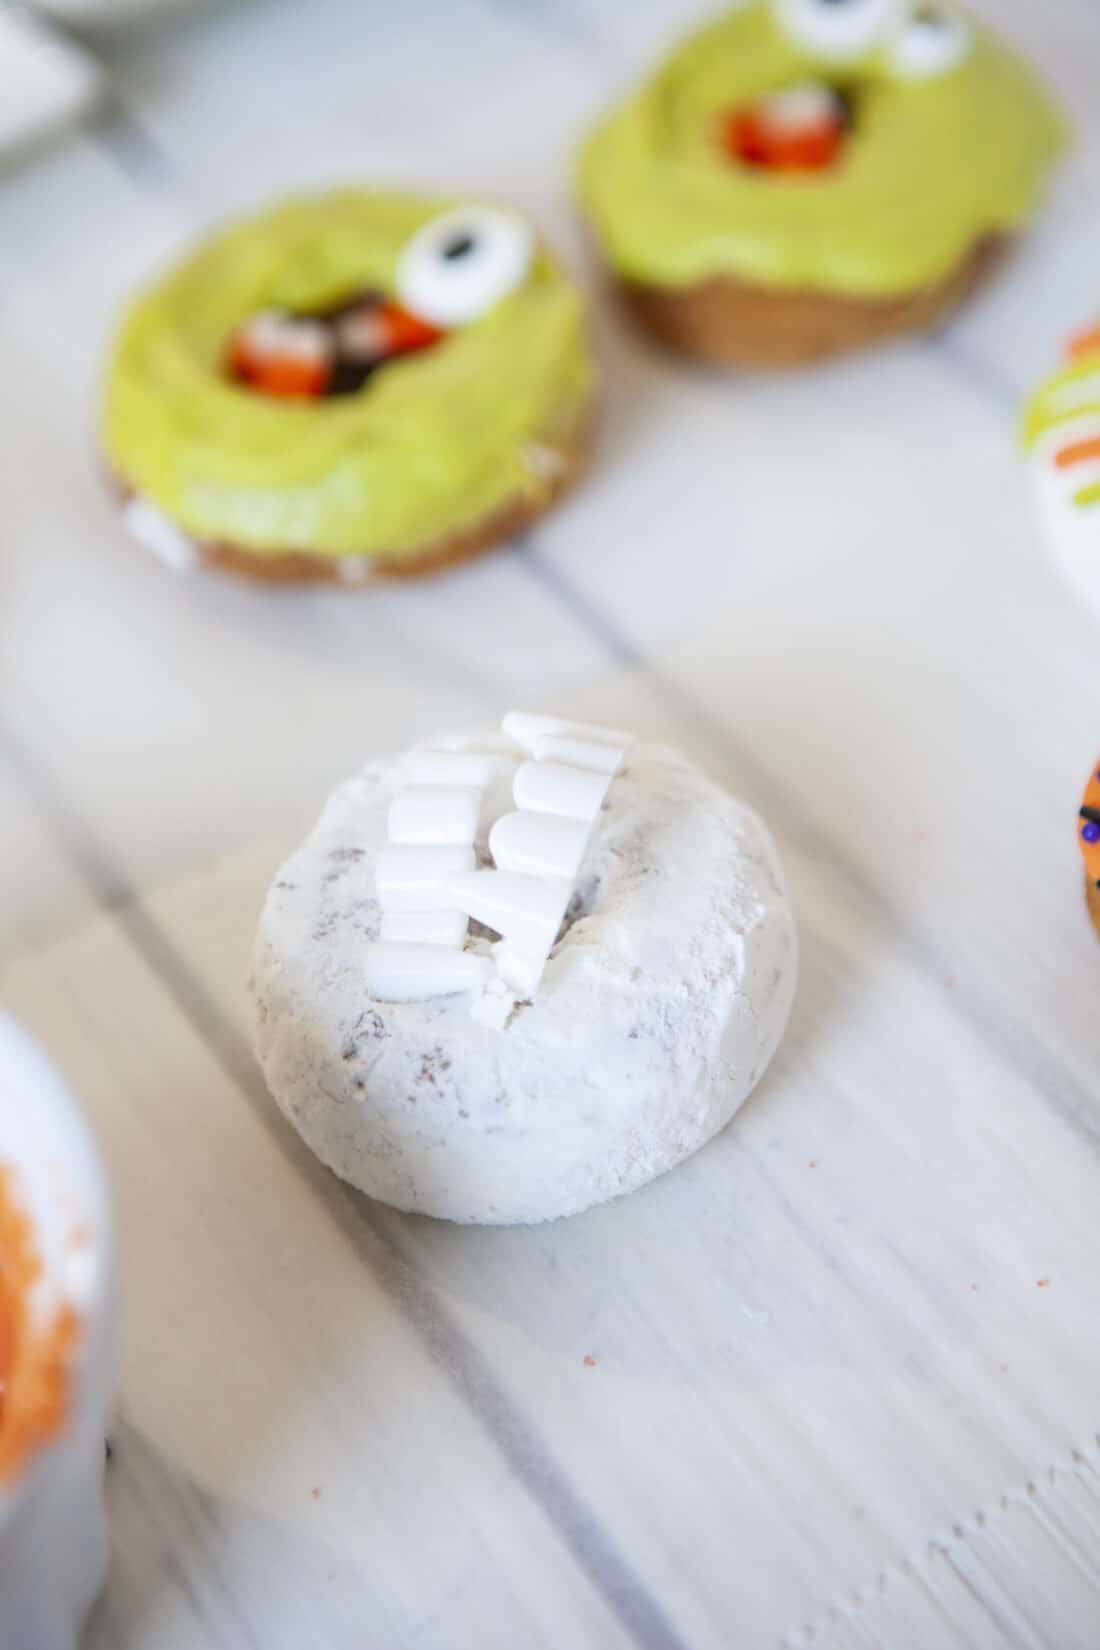 Monster Donuts Vampire. Make these spooky cute Monster Donuts for your next Halloween event. Made with your favorite donuts as a base, you can create and decorate vampires, mummies, and other iconic edible Halloween monsters.